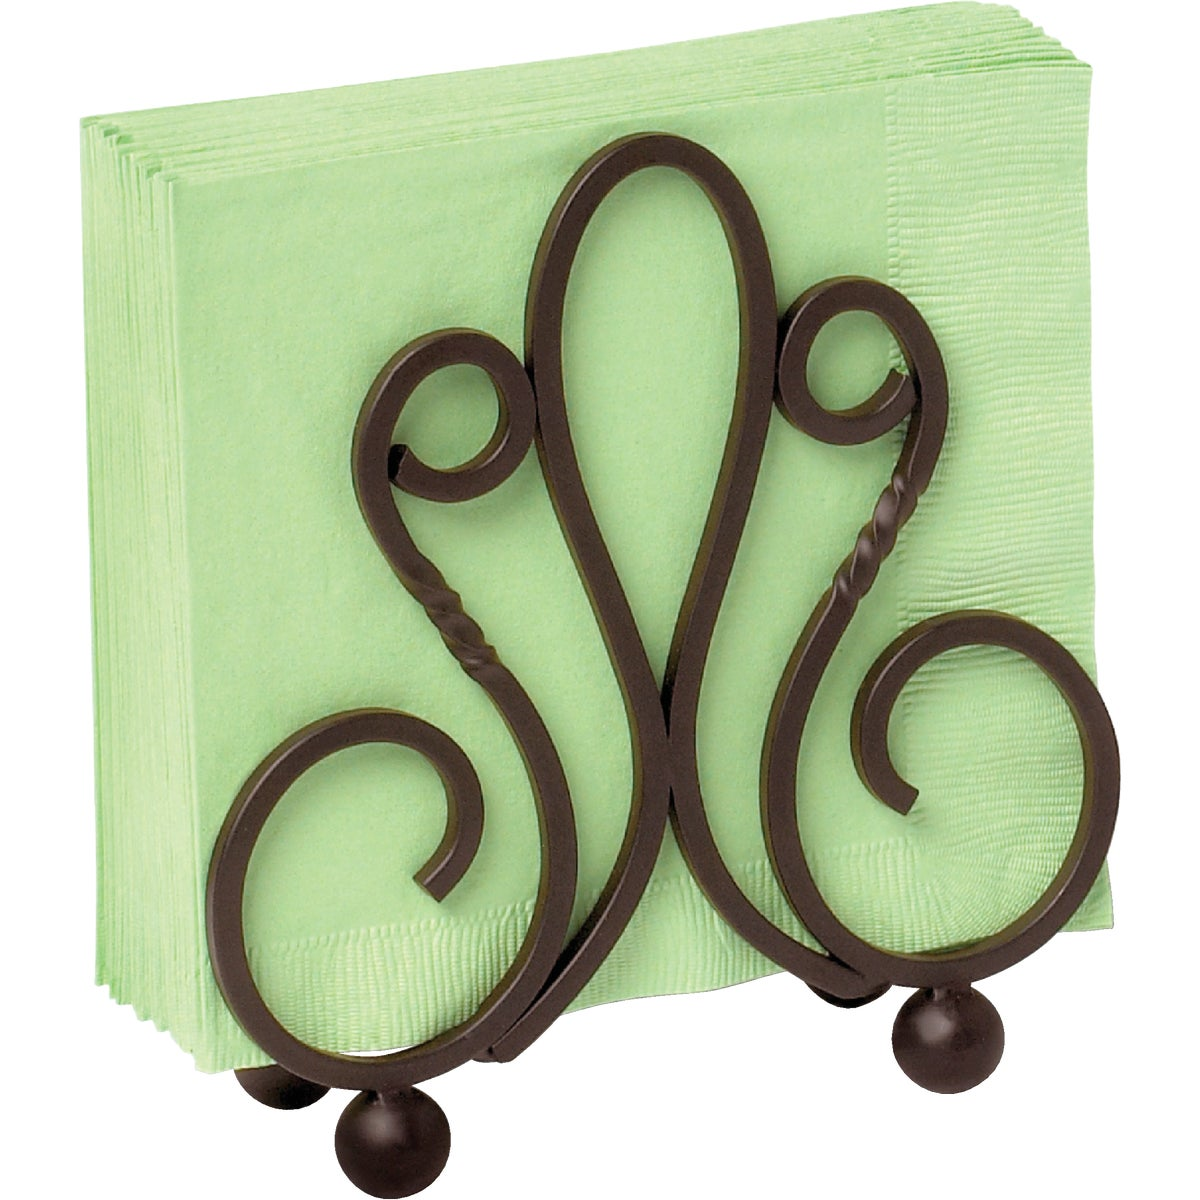 PATRICE NAPKIN HOLDER - 35324 by Spectrum Diversified